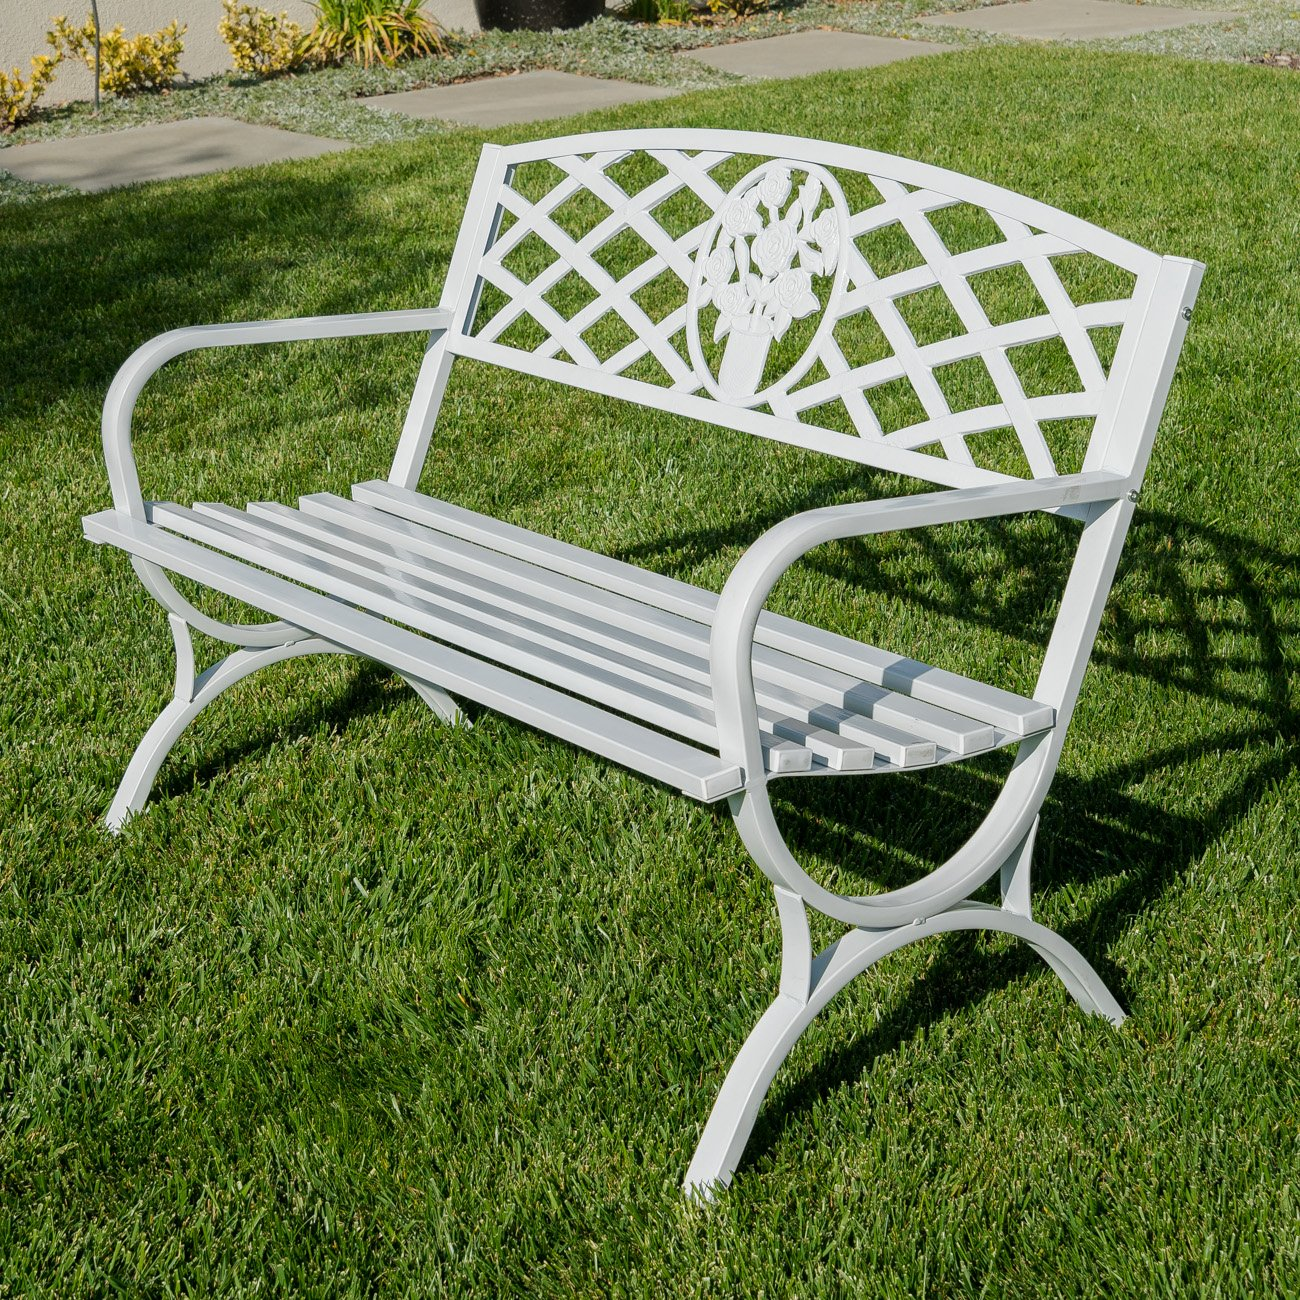 Belleze 50'' inch Outdoor Park Bench Garden Backyard Furniture Chair Porch Seat Steel Frame, White by Belleze (Image #3)